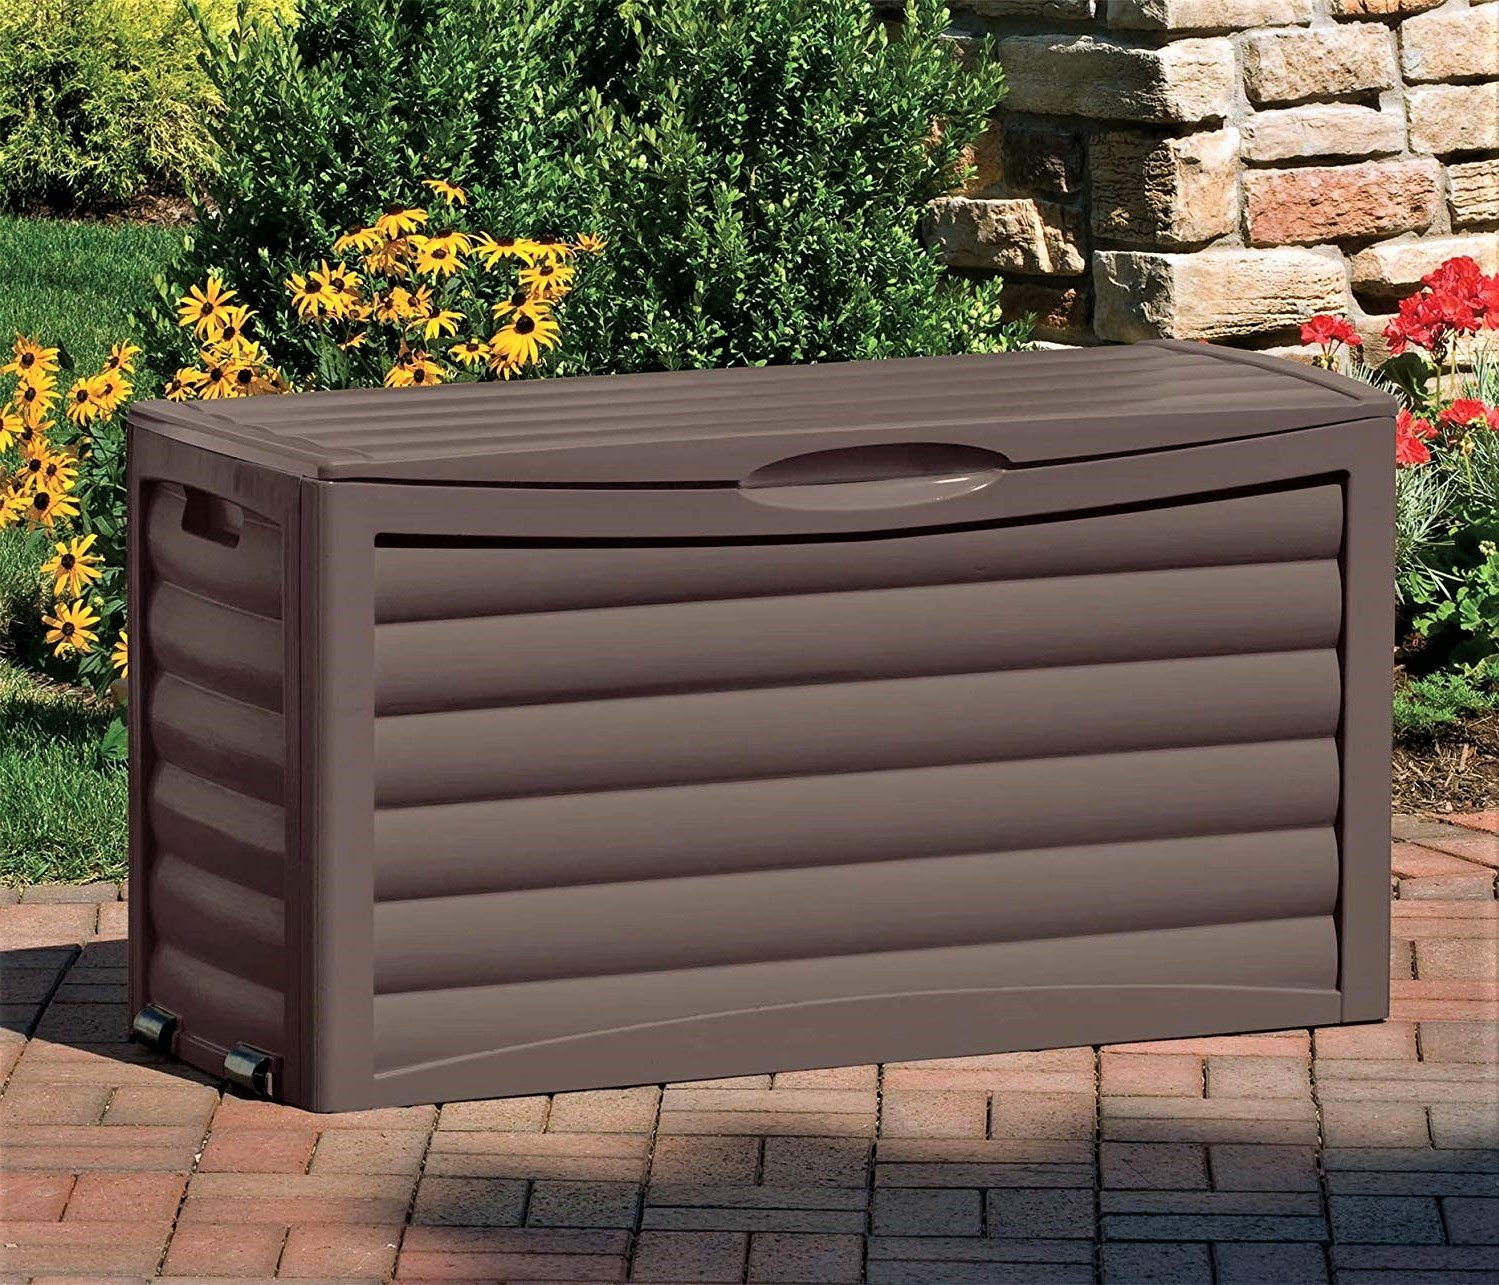 Large Pool Deck Box Storage Box with Handles and Rollers Portable Easy Assembly Outdoor Patio Yard Garden Multi Use Home Organizer & Free Ebook by Stock4All